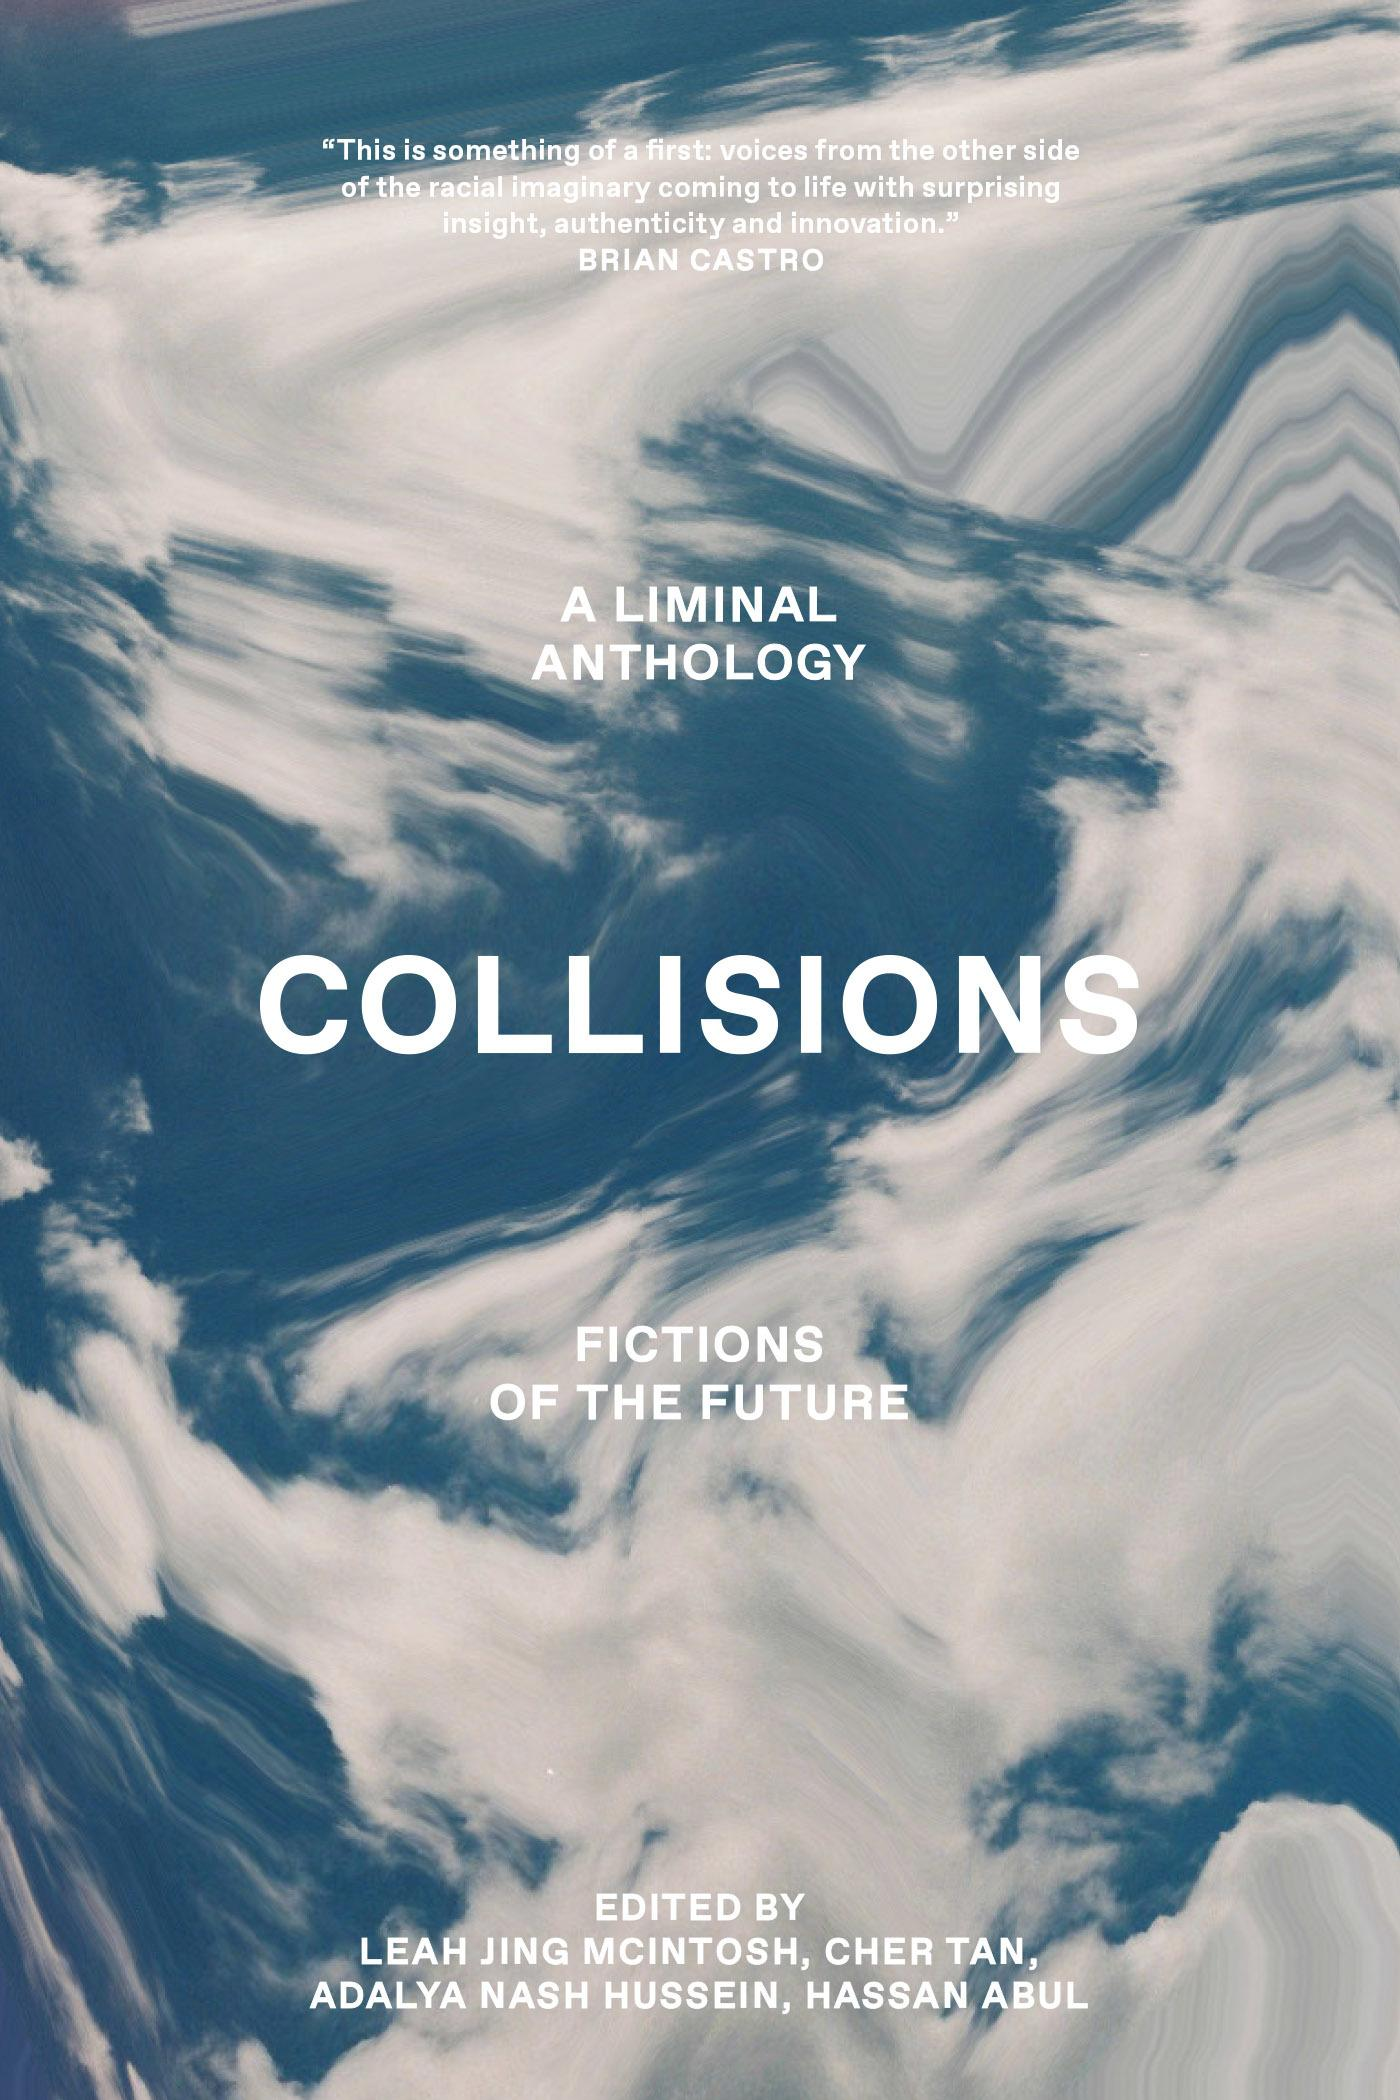 Collisions: Fictions of the Future